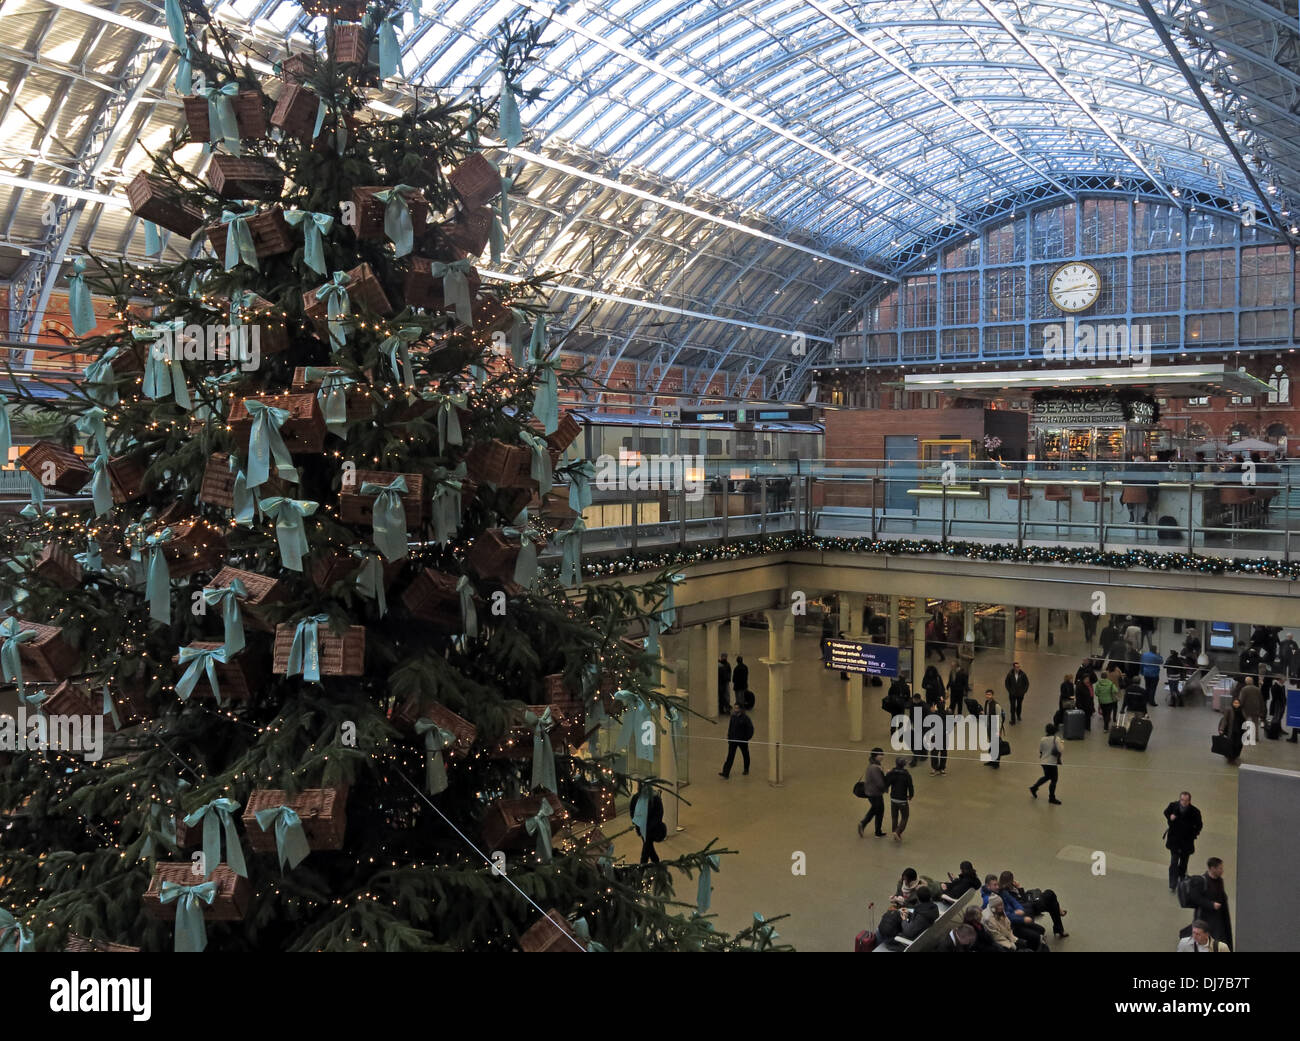 St Pancras railway station at Christmas London England UK - Stock Image